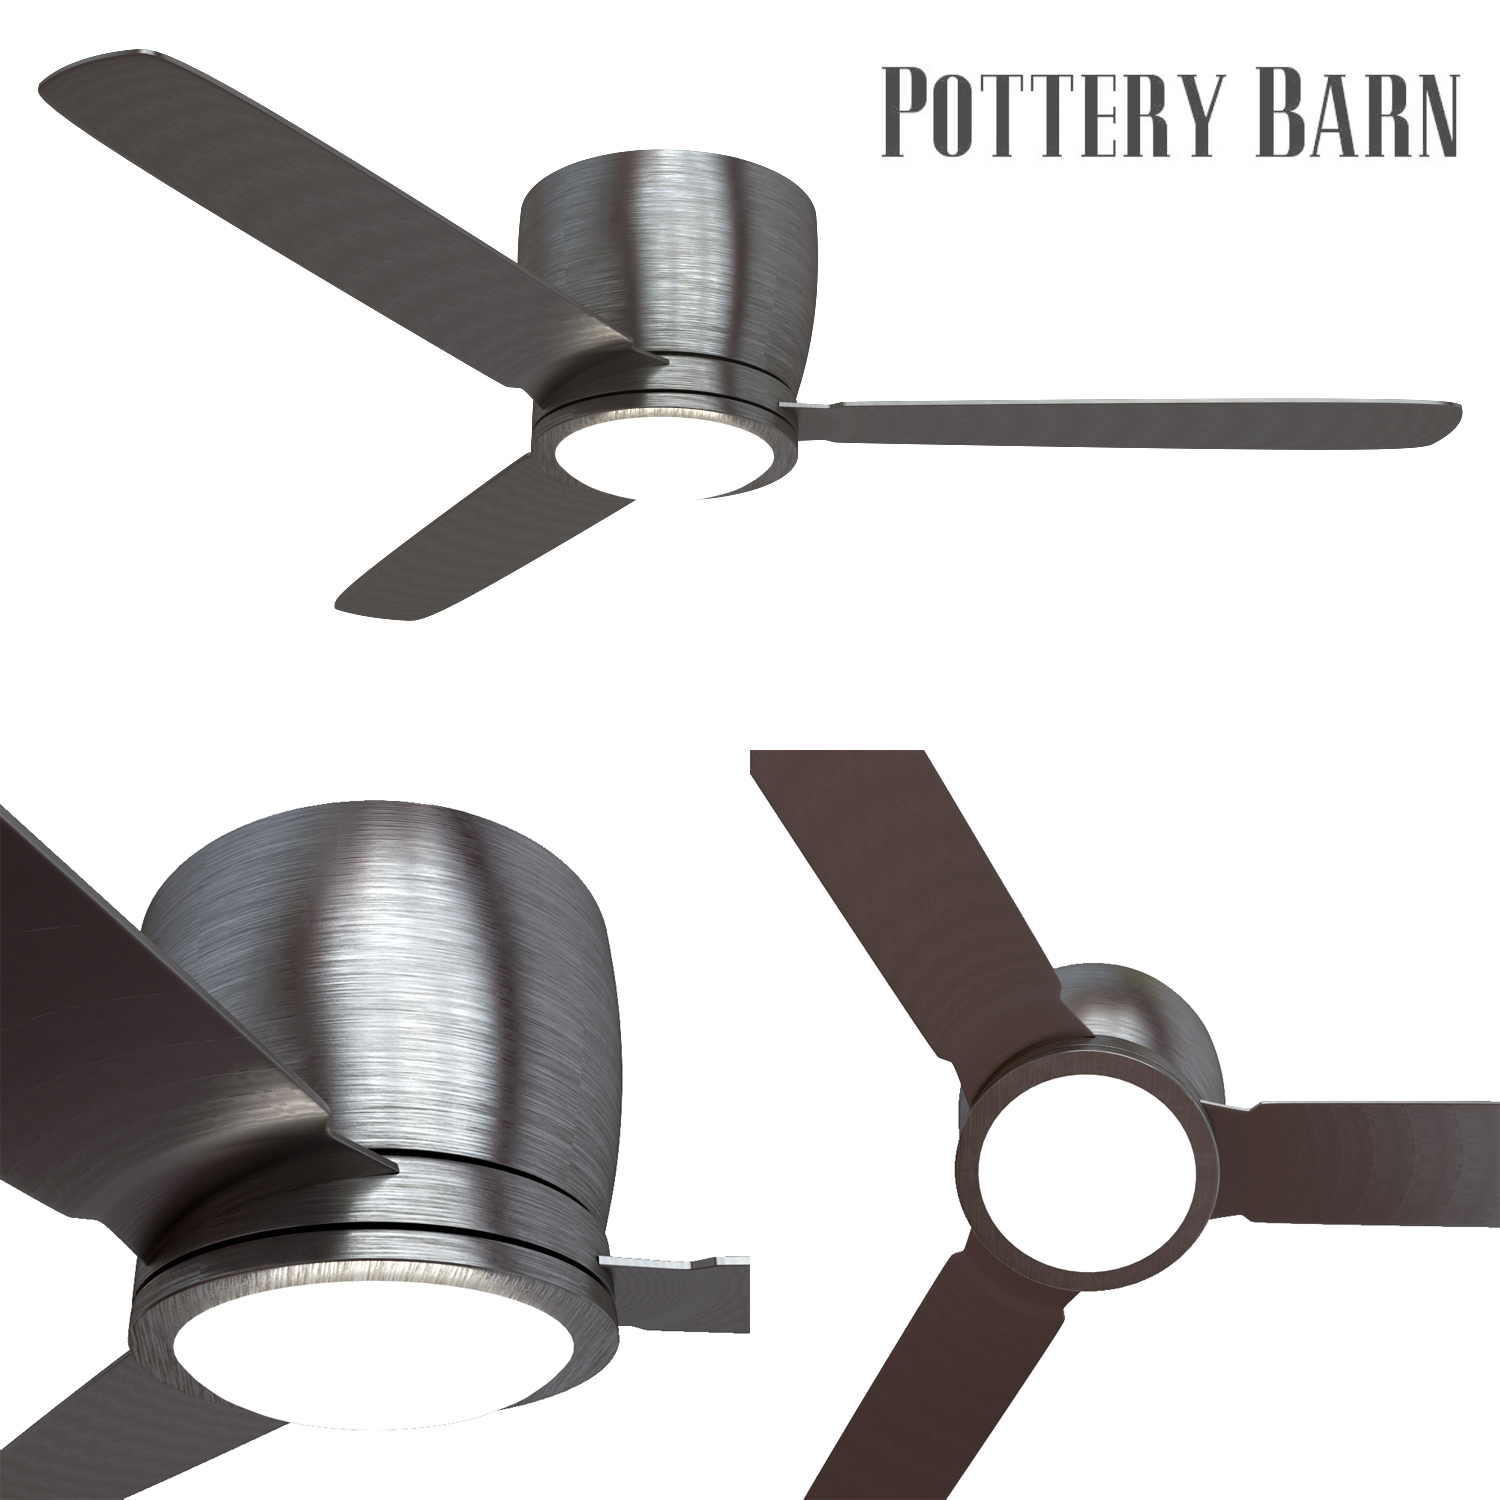 Pottery barn ceiling fan brushed nickel by erkinaliyev 3docean embrace ceiling fan brushed nickel preview 590g embrace ceiling fan brushed nickel preview thumbnailg mozeypictures